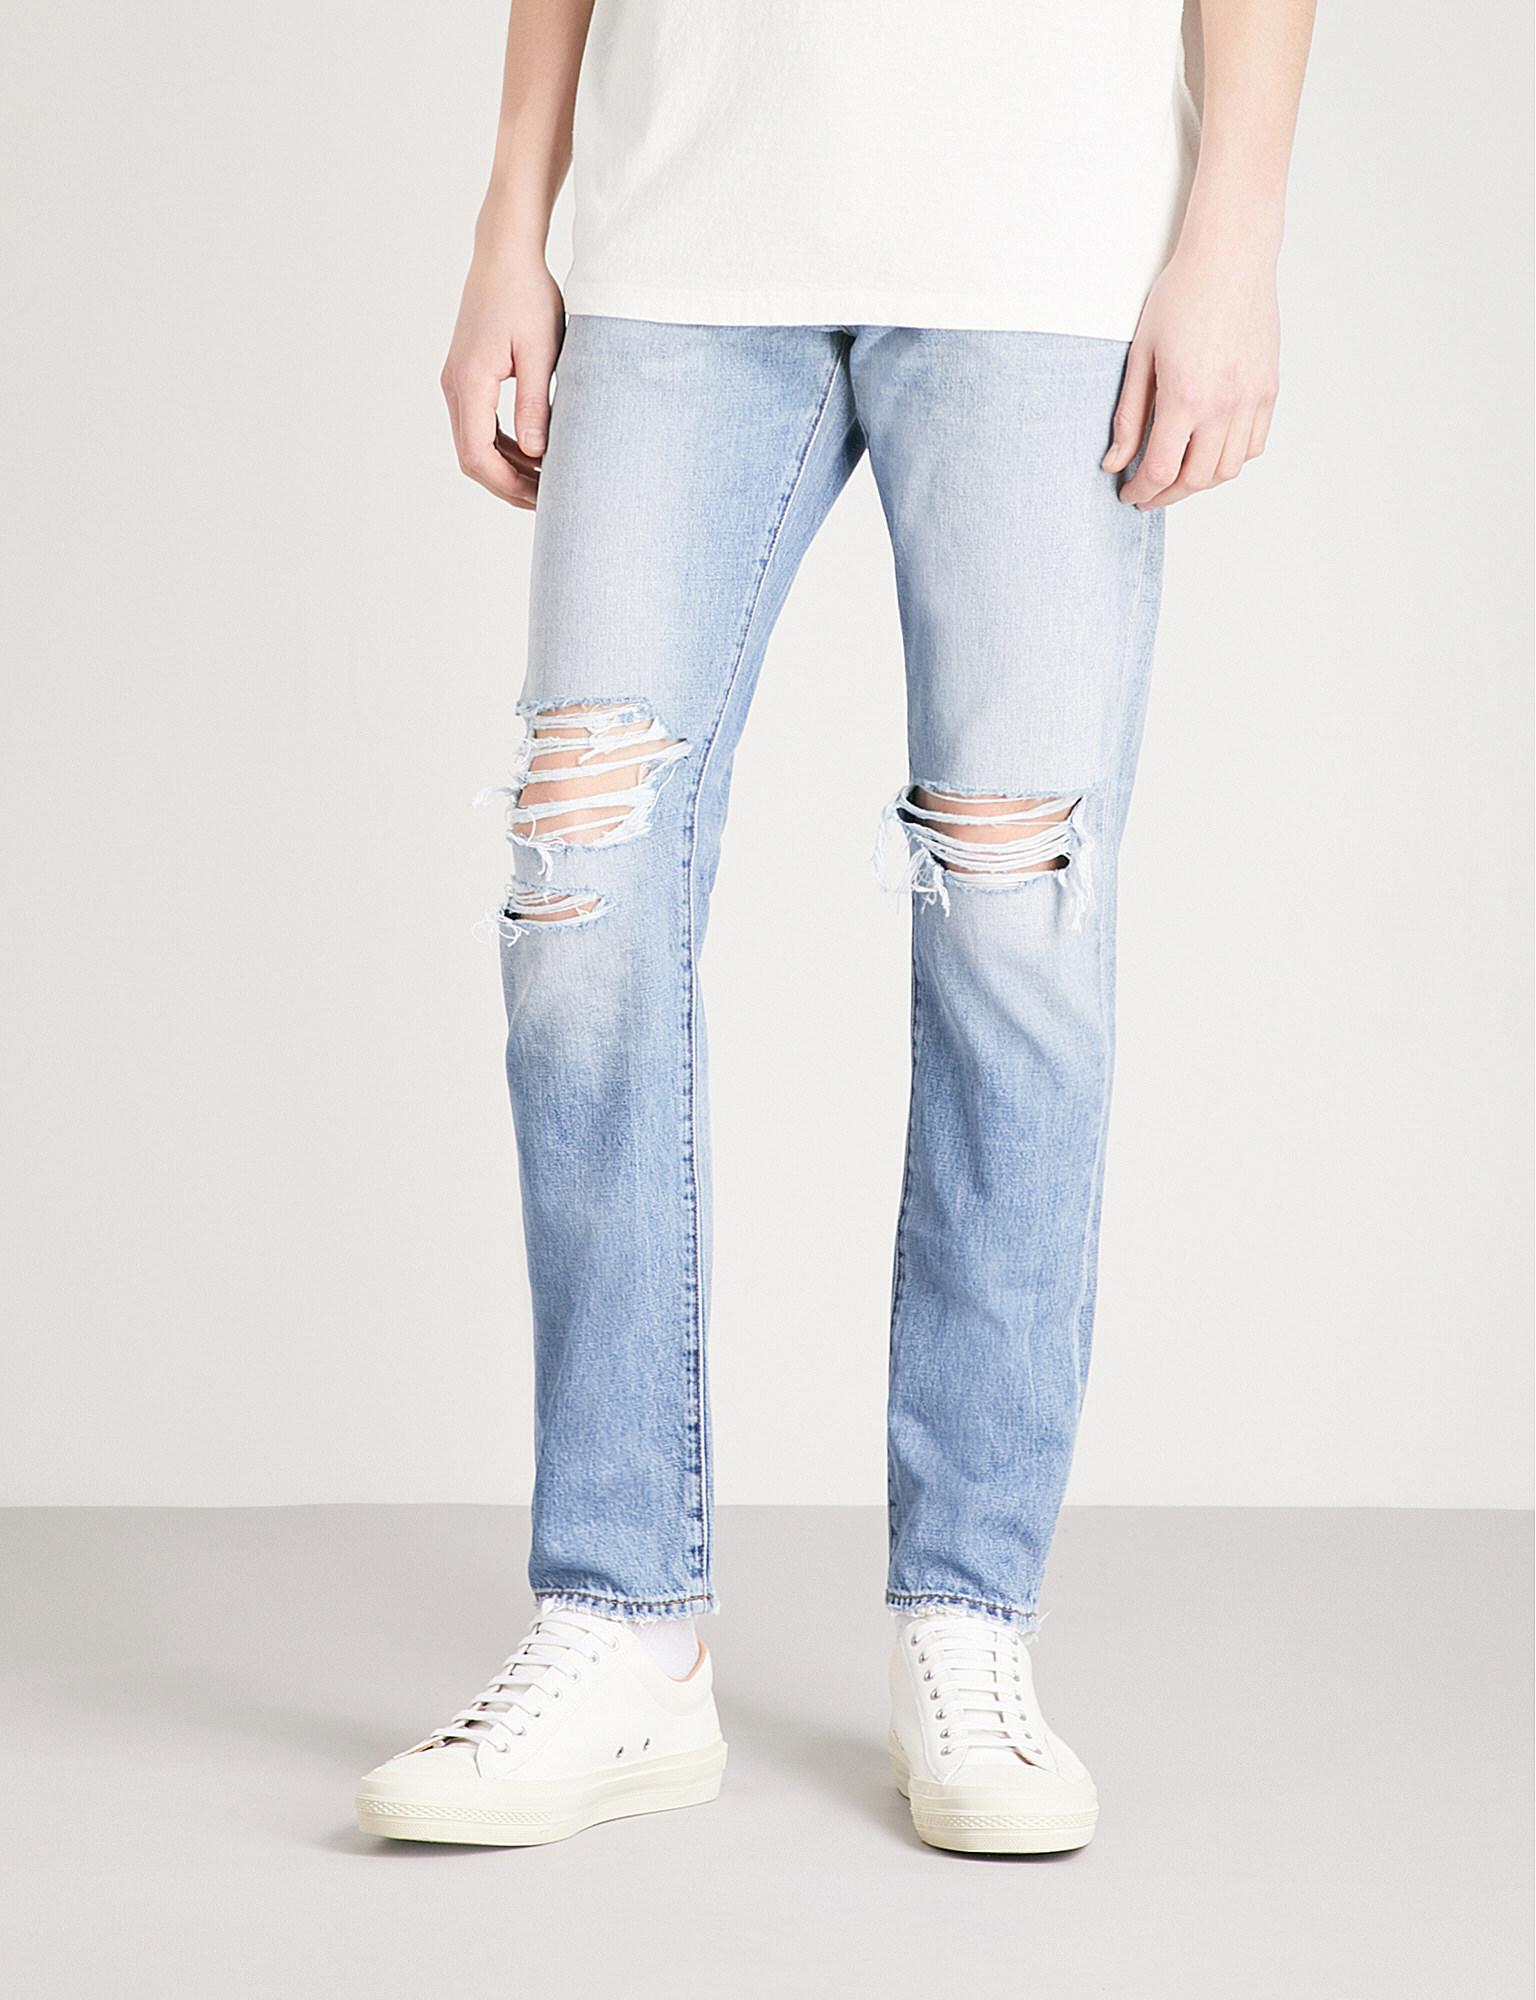 Lou slim fit jeans - White NEUW iqlATdC1WH